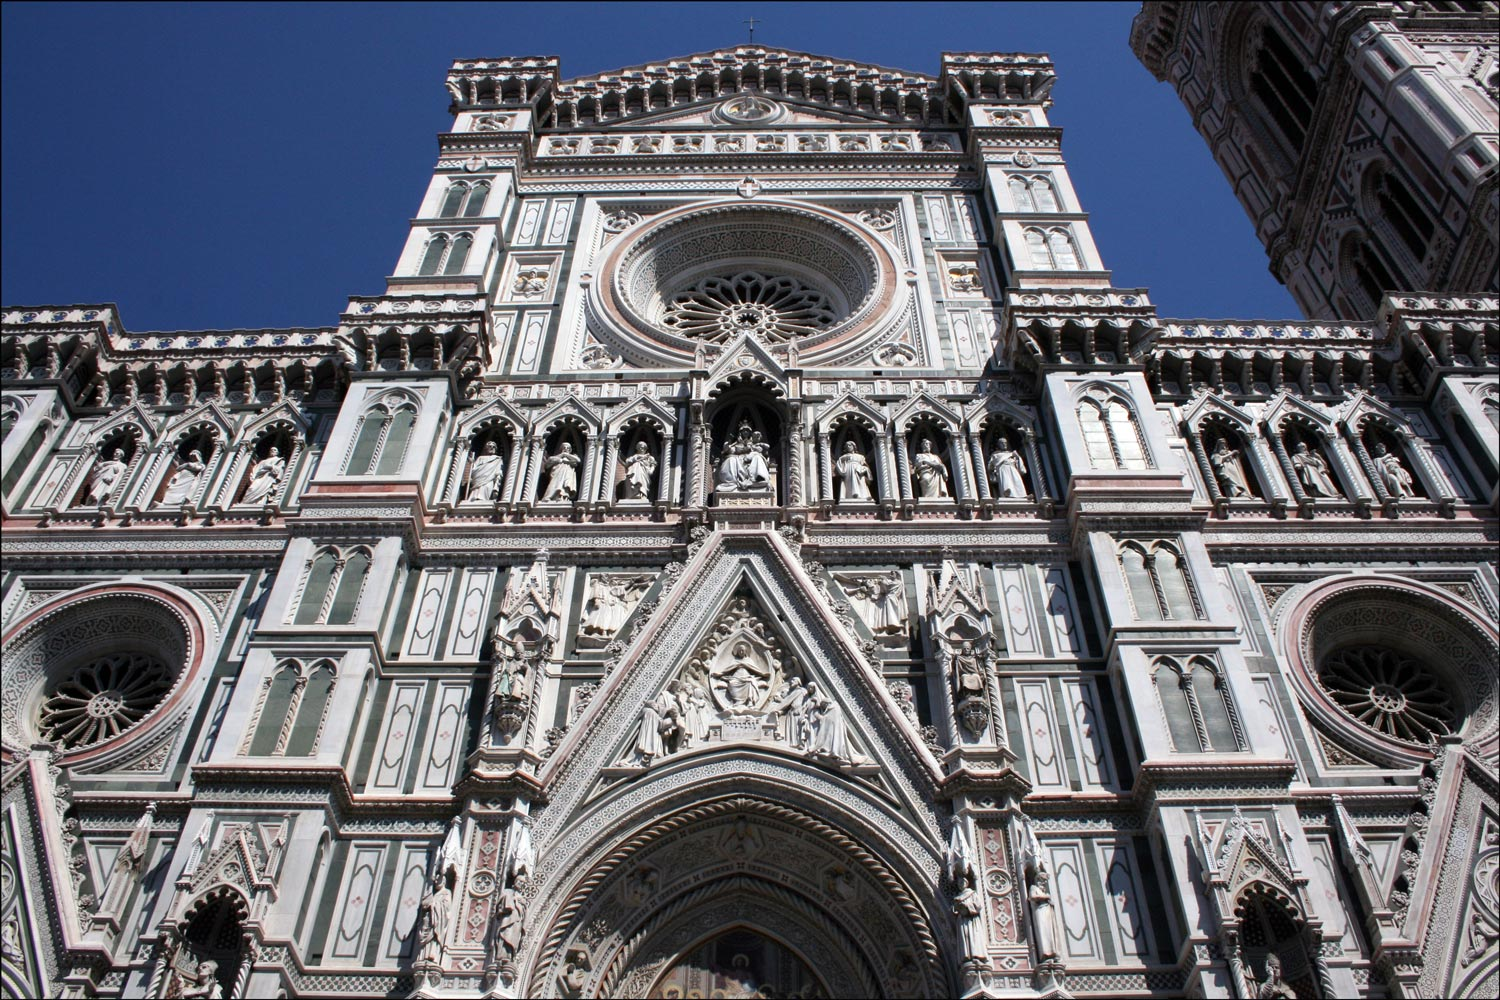 Detail of the Basilica di Santa Maria del Fiore